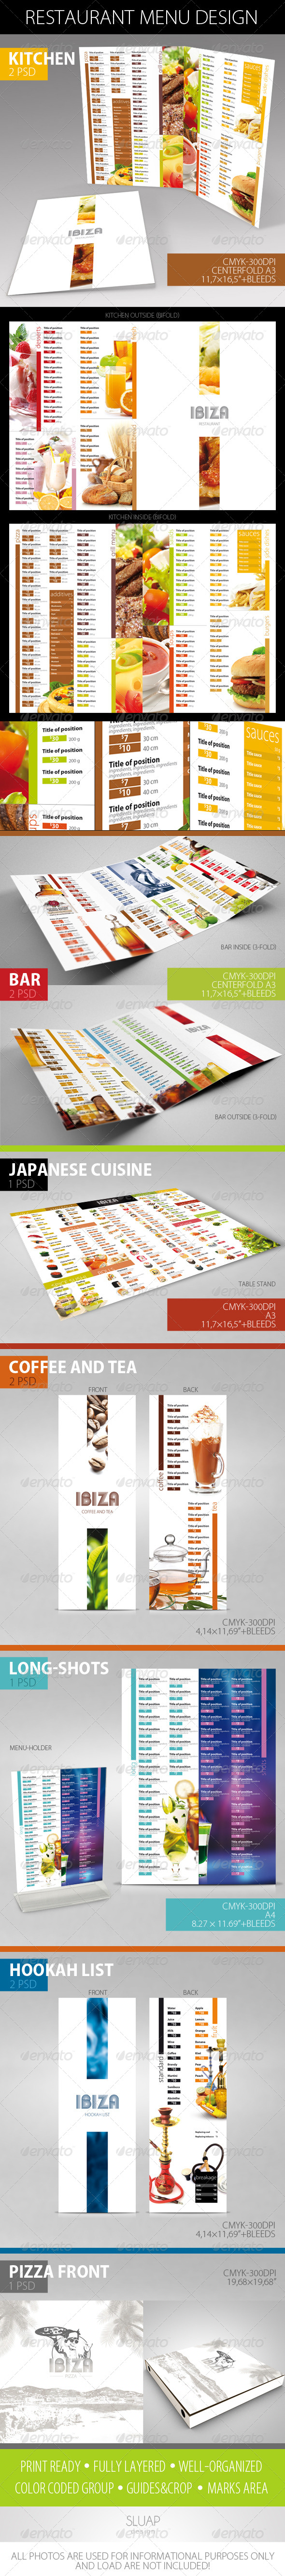 Restaurant Menu Design - Food Menus Print Templates